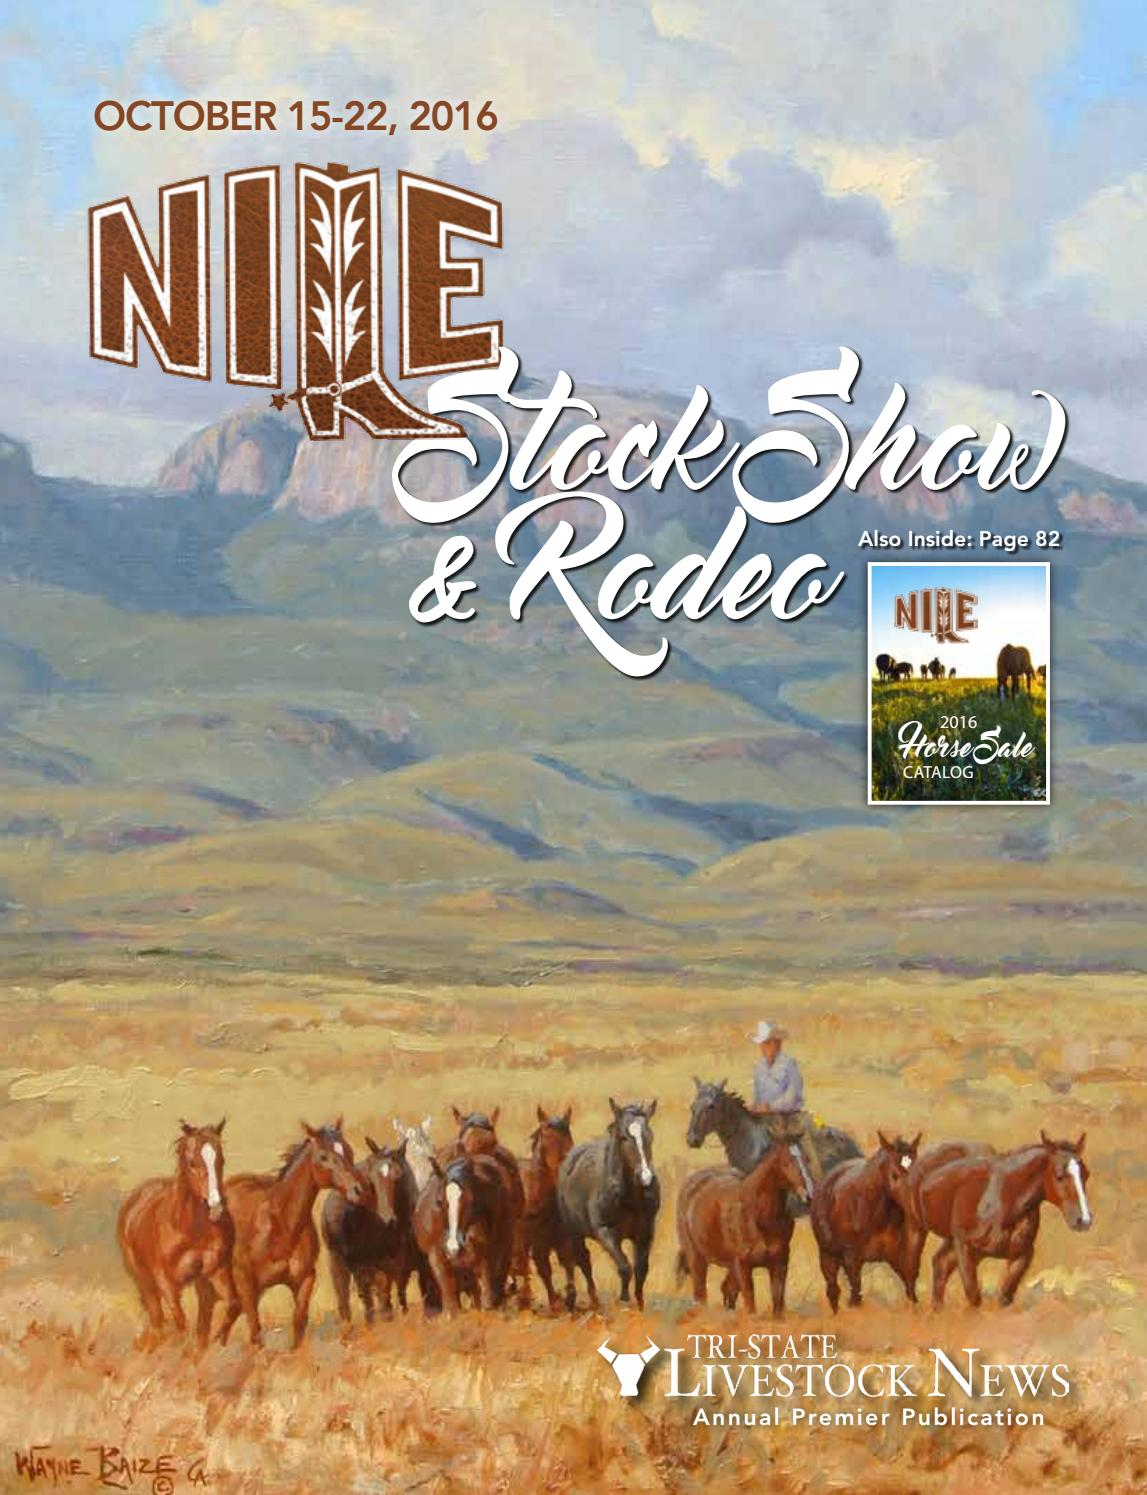 079218bea2 2016 NILE Premier Issue & Horse Sale Catalog by Tri-State Livestock ...